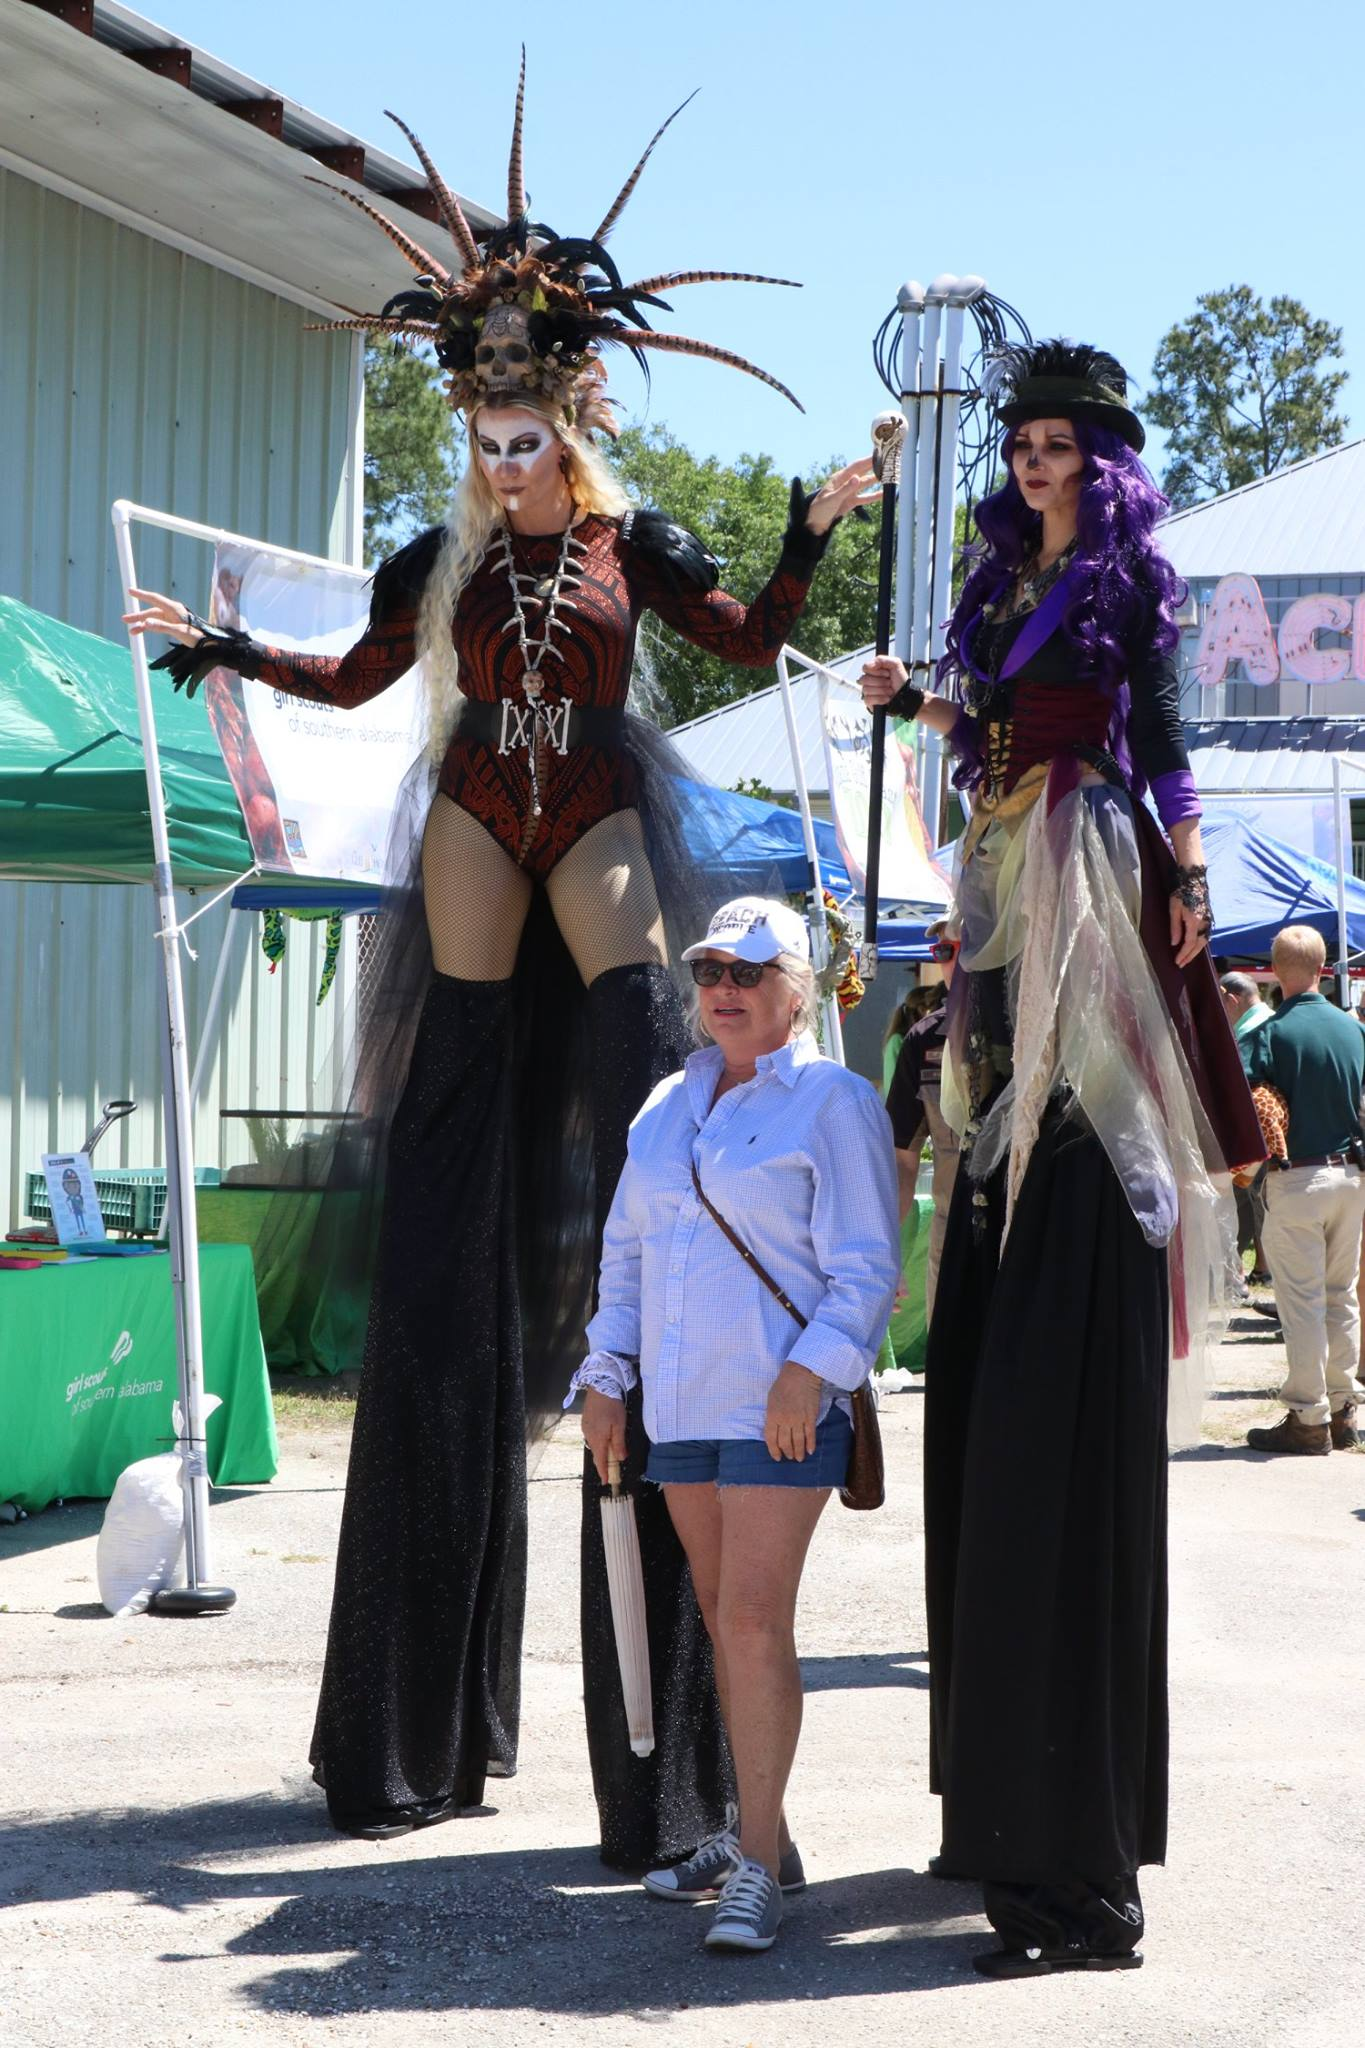 woman standing by stilt walkers